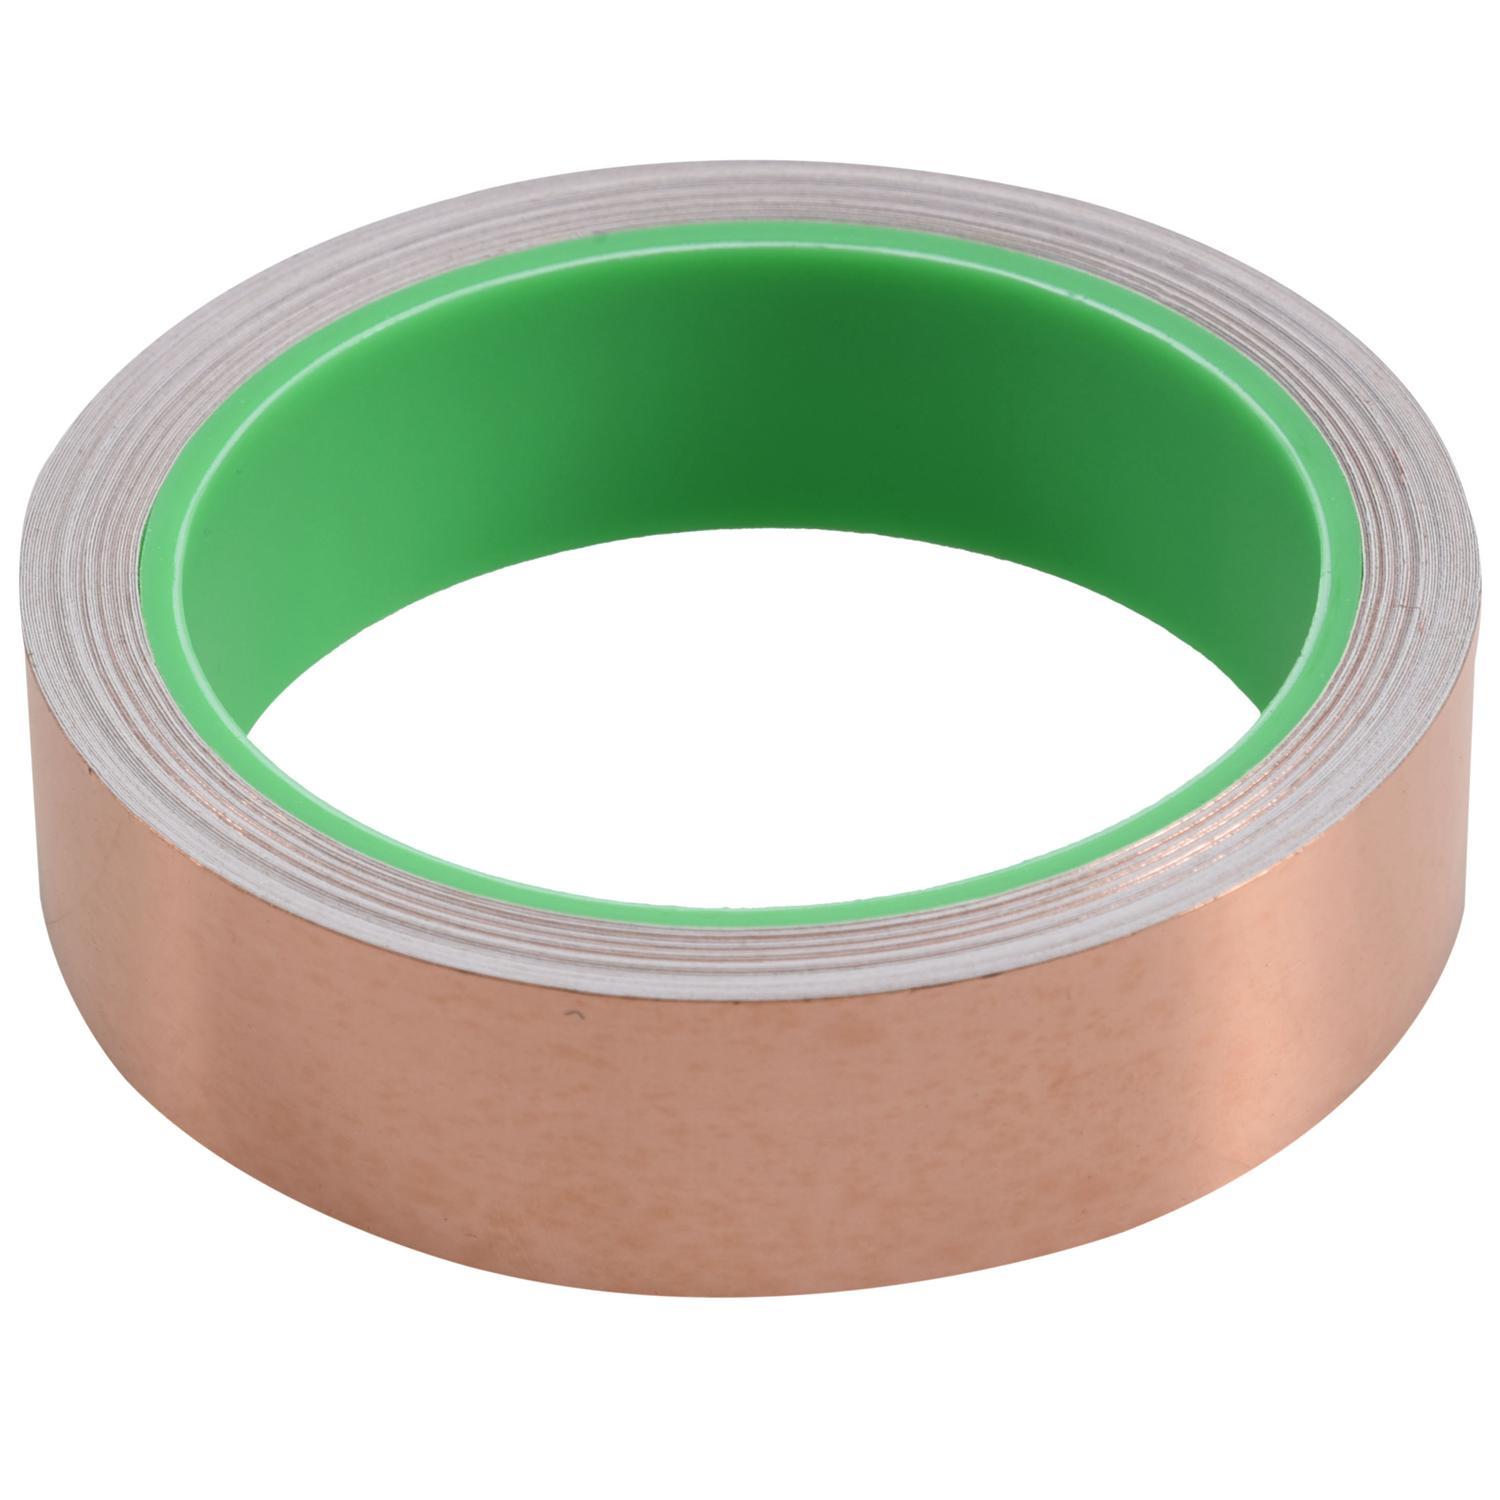 Copper Foil Tape with Conductive Adhesive (25mm X 11meters) - Slug Repellent, EMI Shielding, Stained Glass, Paper Circuits, El